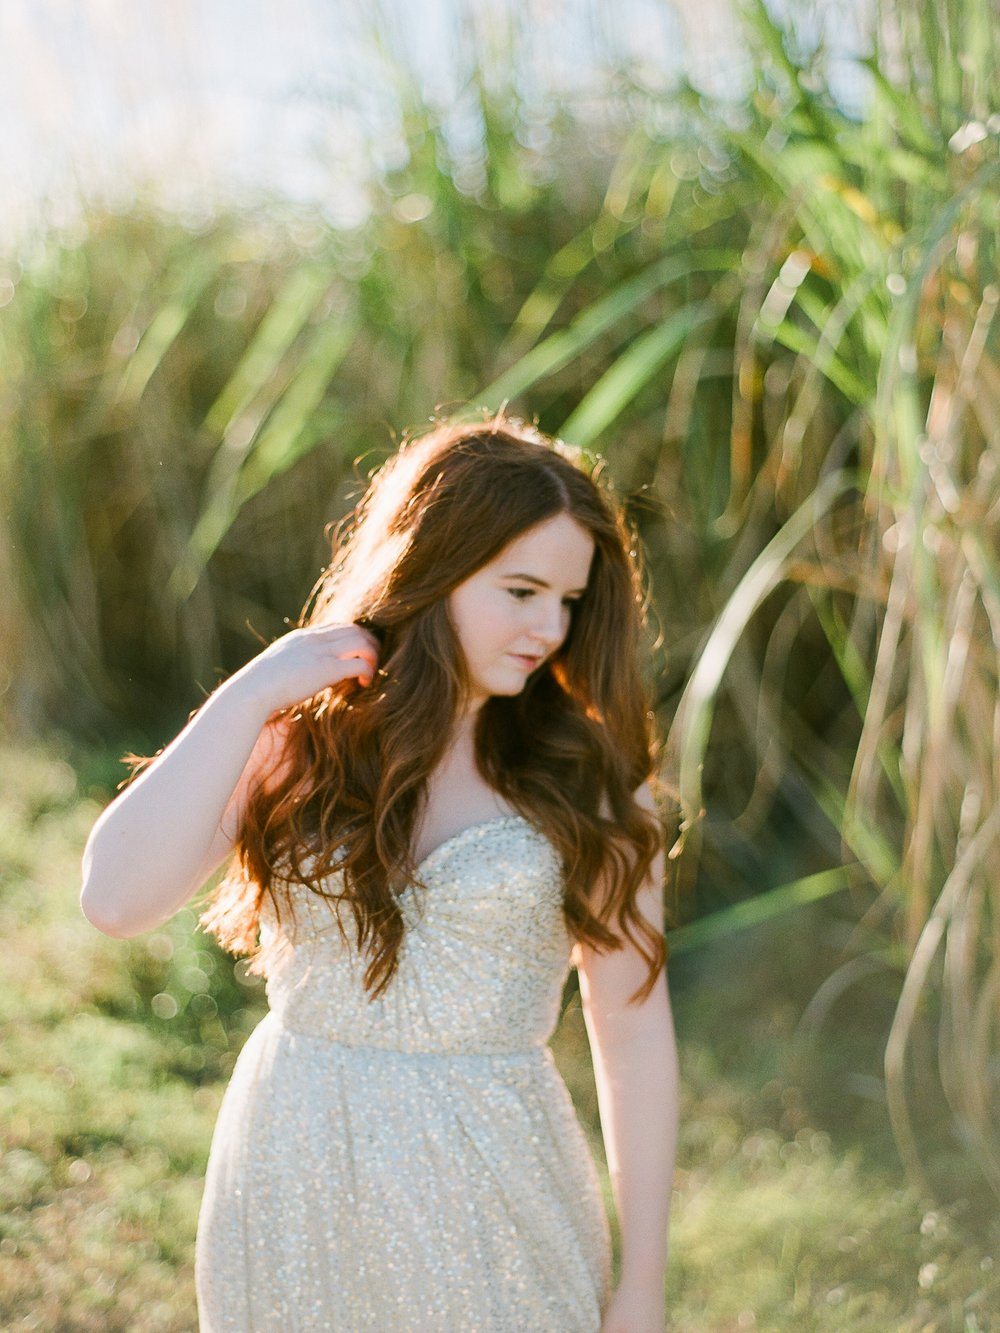 Sugarcane Inspired Shoot 2 5.jpg